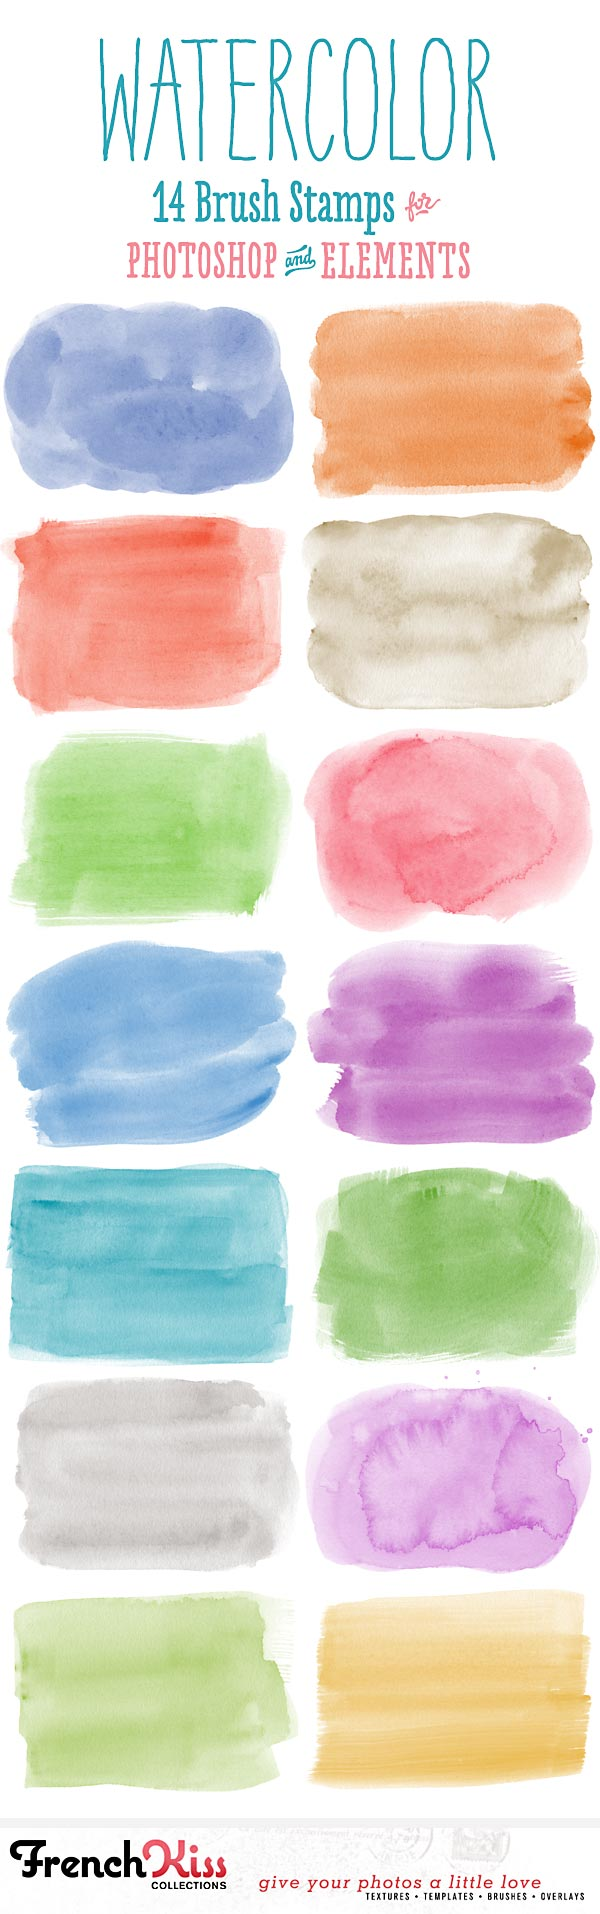 14 watercolor spot brushes